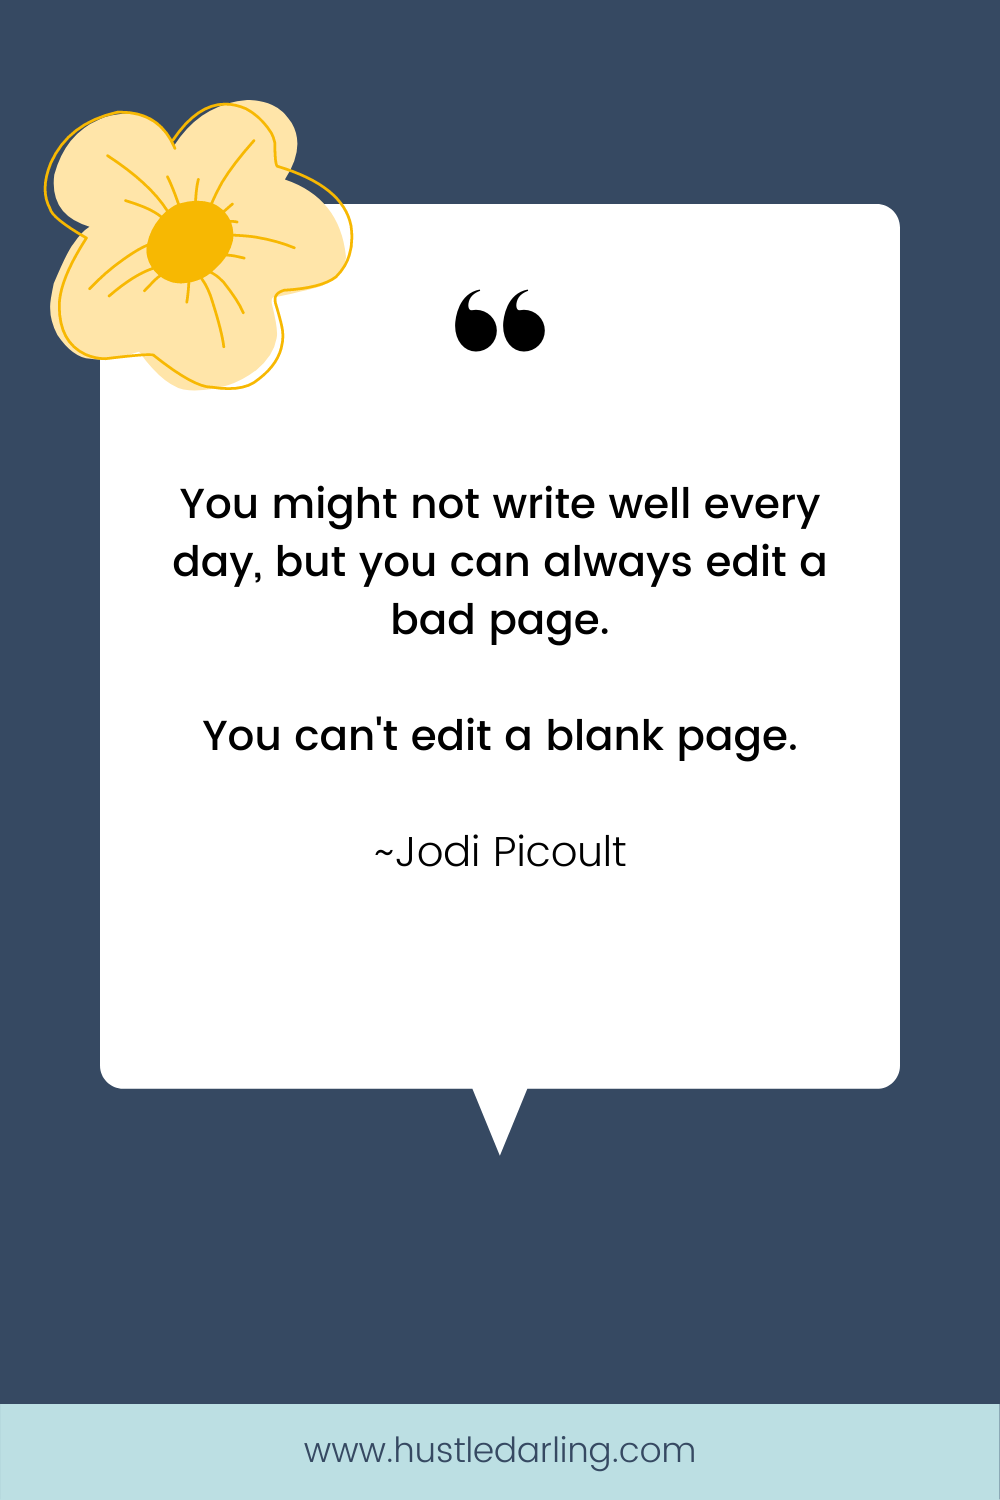 """A yellow flower is in the top left corner of the image. On a dark blue background is a white speech bubble with a large quotation mark at the top. Text underneath reads """"You might not write well every day, but you can always edit a bad page. You can't edit a blank page. ~ Jodi Picoult"""""""